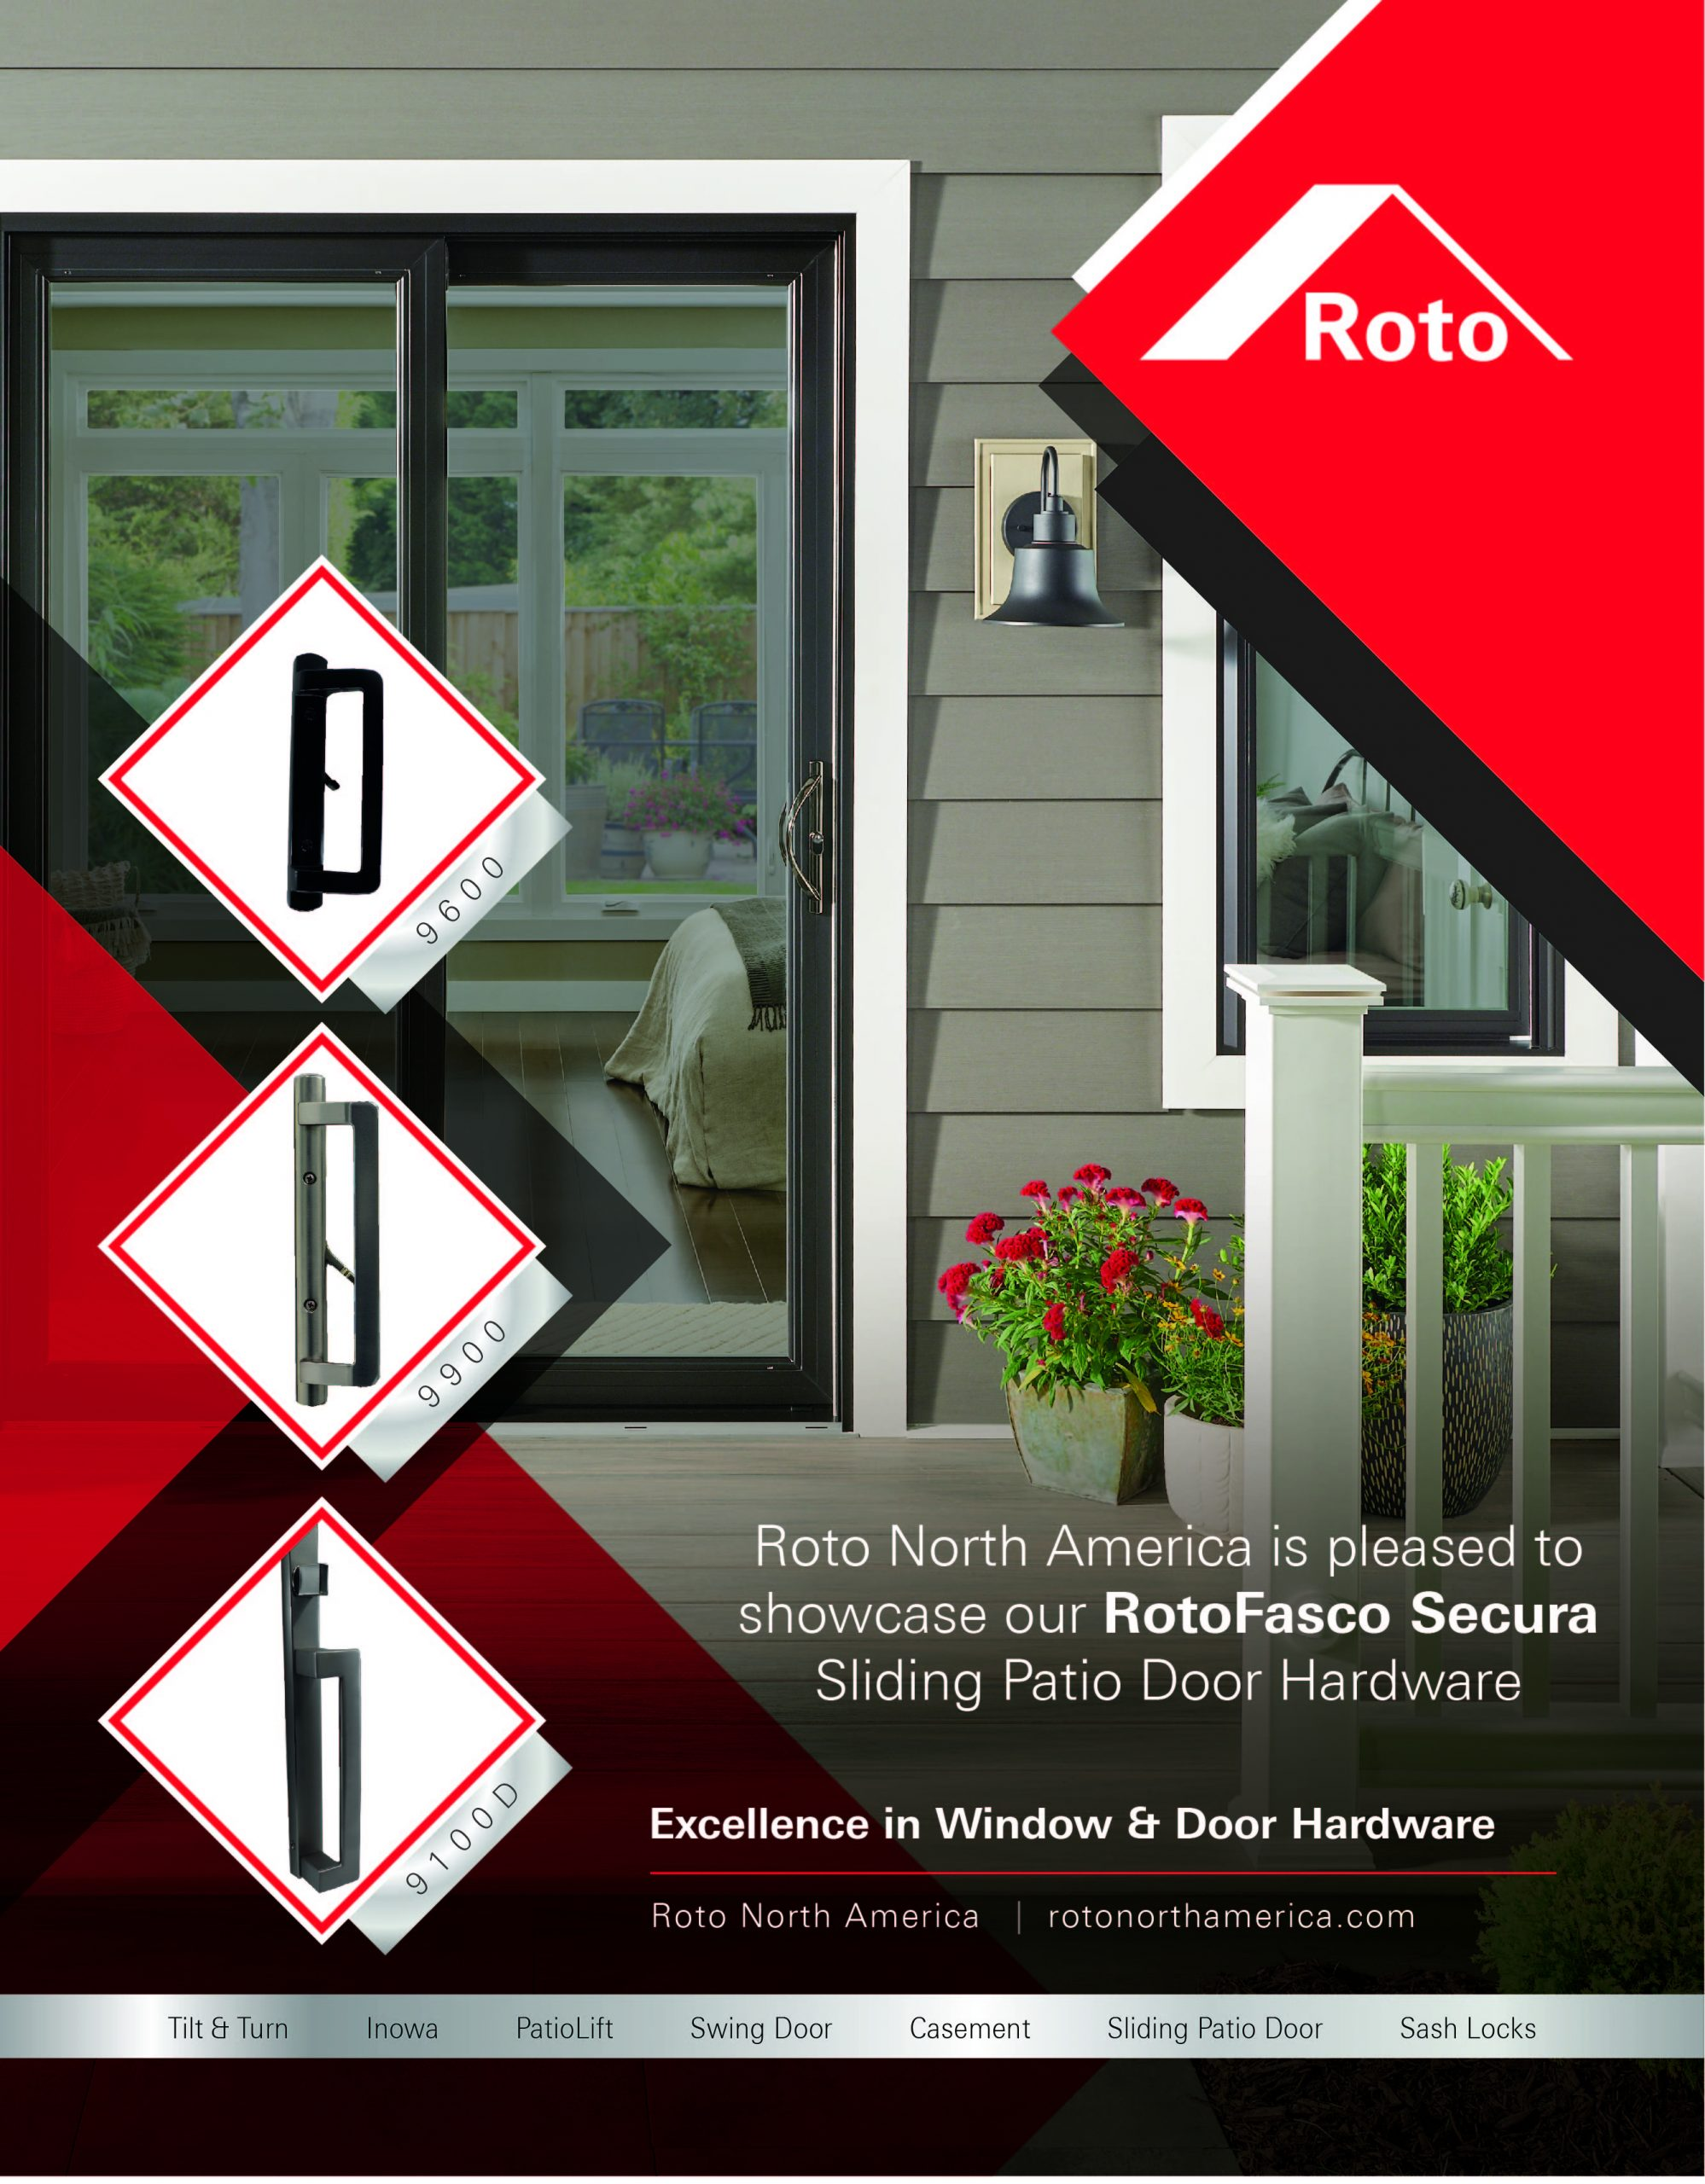 Roto North America Sliding Patio Ad